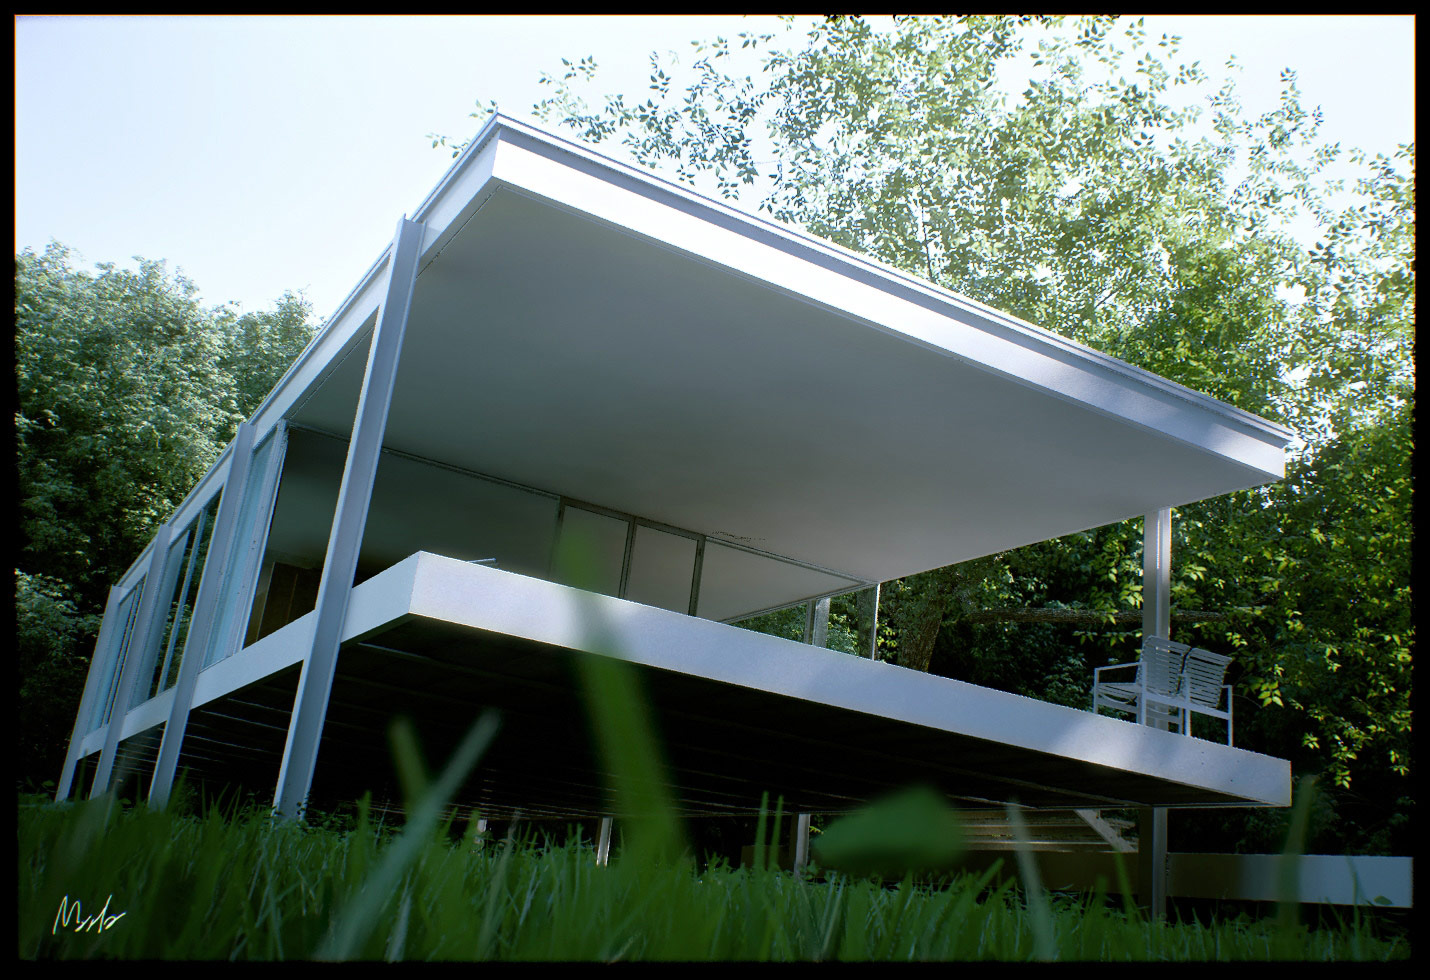 Stunning House Render using Maya